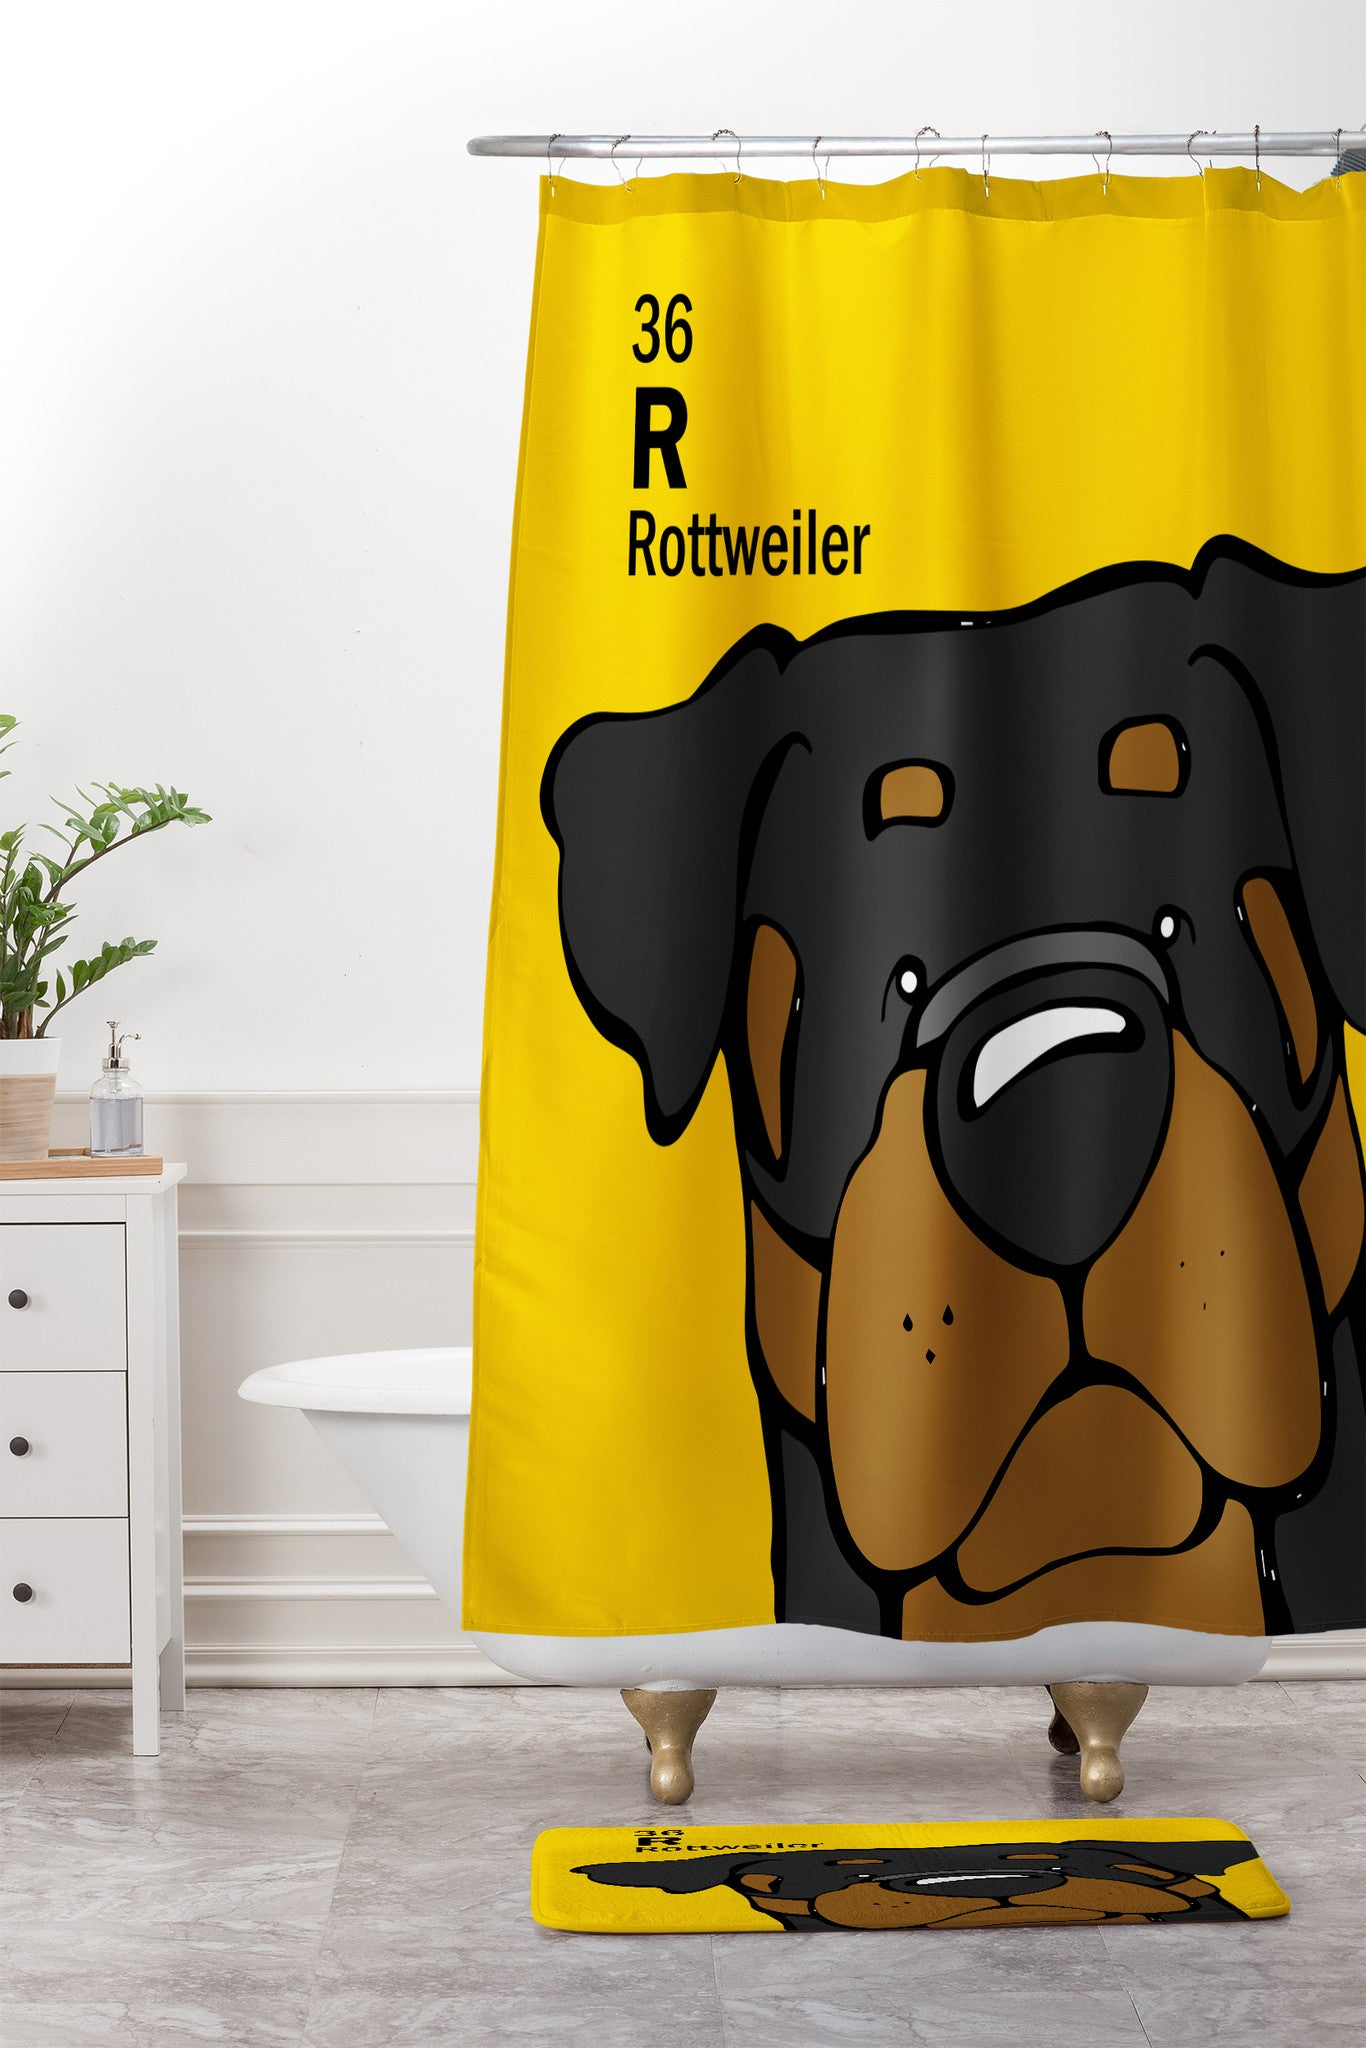 Angry Squirrel Studio Rottweiler 36 Shower Curtain And Mat